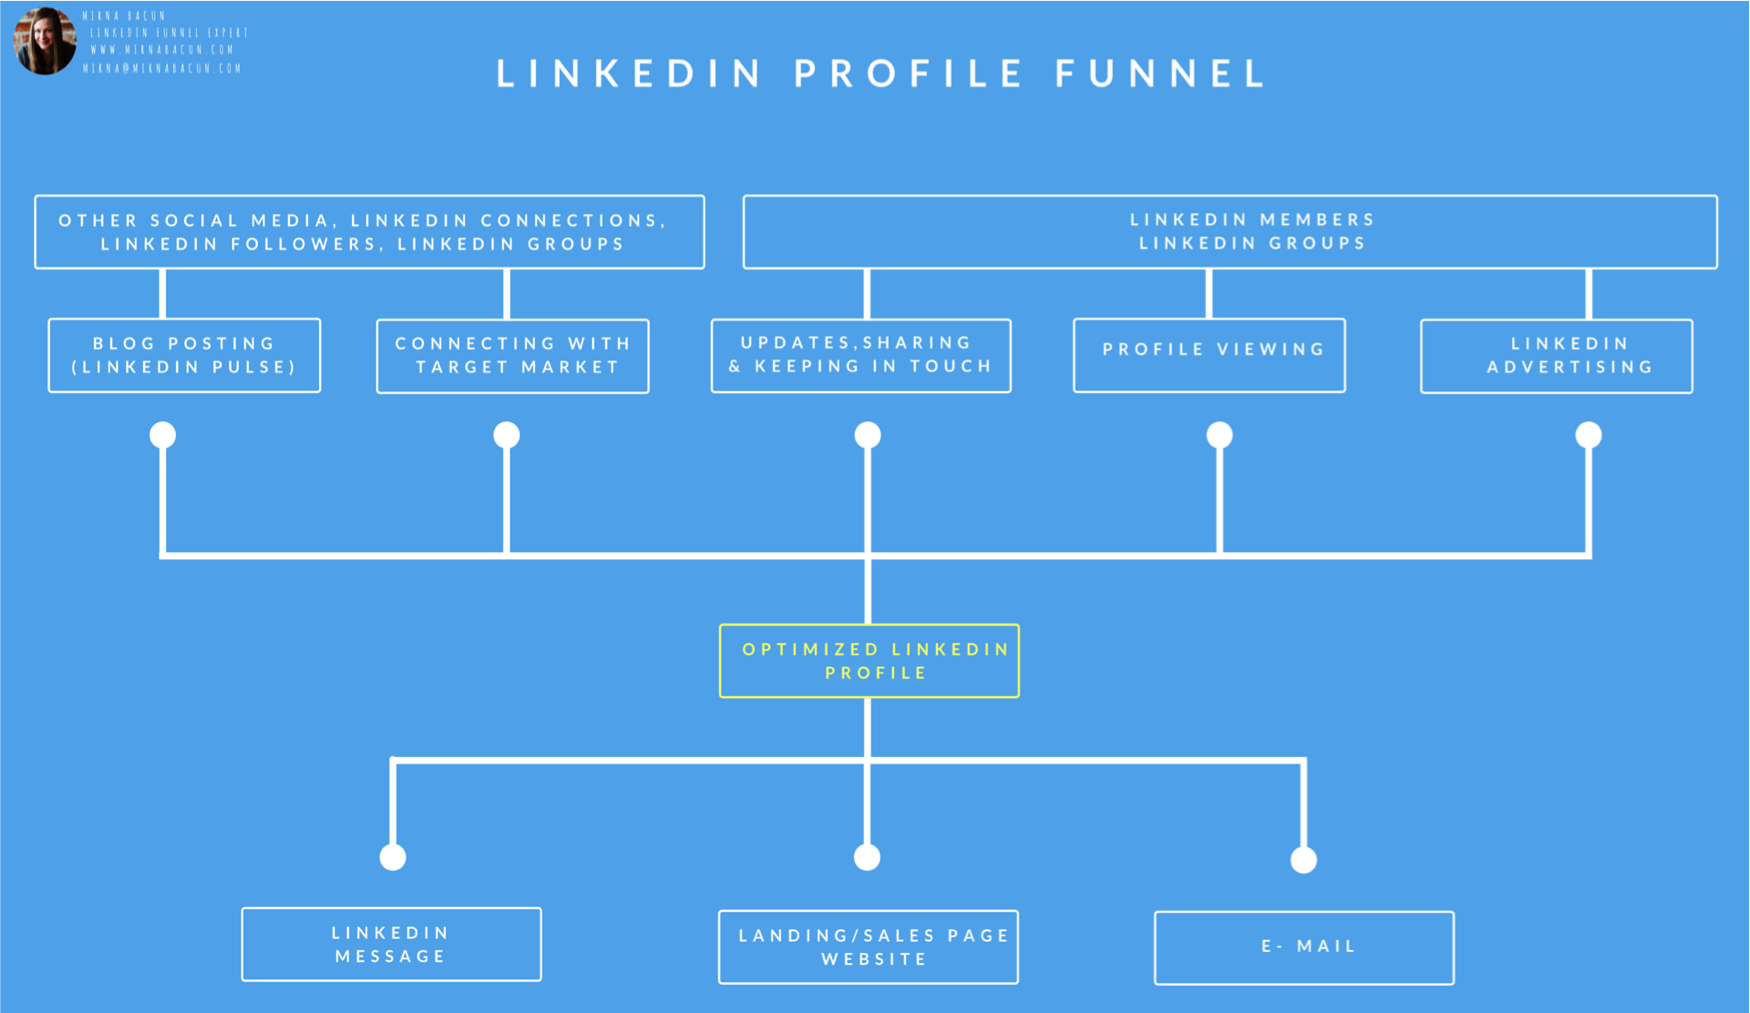 Linkedin profile funnel mirna bacun my clients are on linkedin but my linkedin profile sucks i want to improve it and implement a linkedin lead generation funnel that works on autopilot malvernweather Choice Image